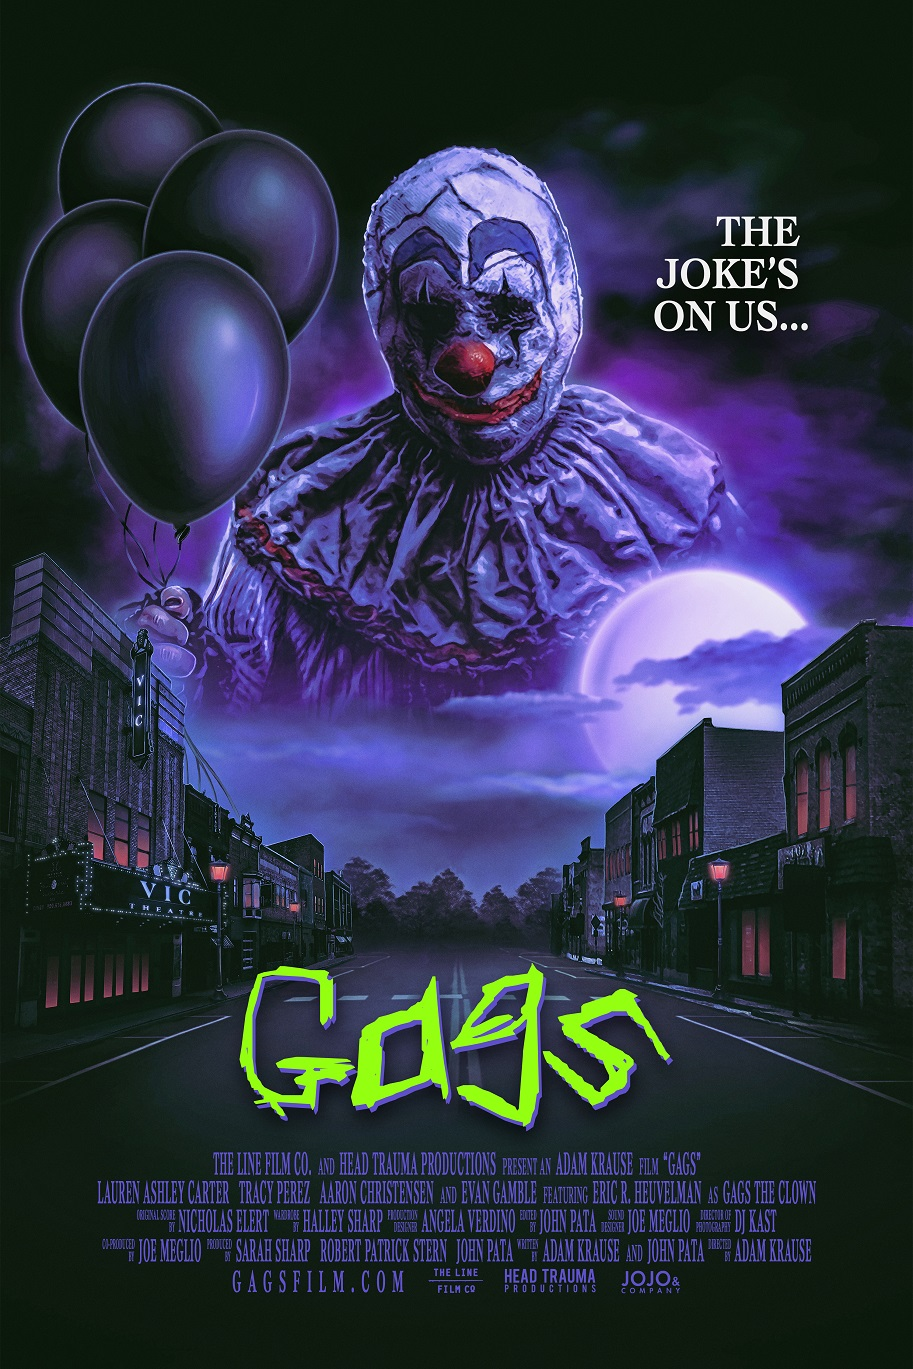 Angela Nicholas Movies rent 'gags the clown' for only 99 cents on itunes! - bloody